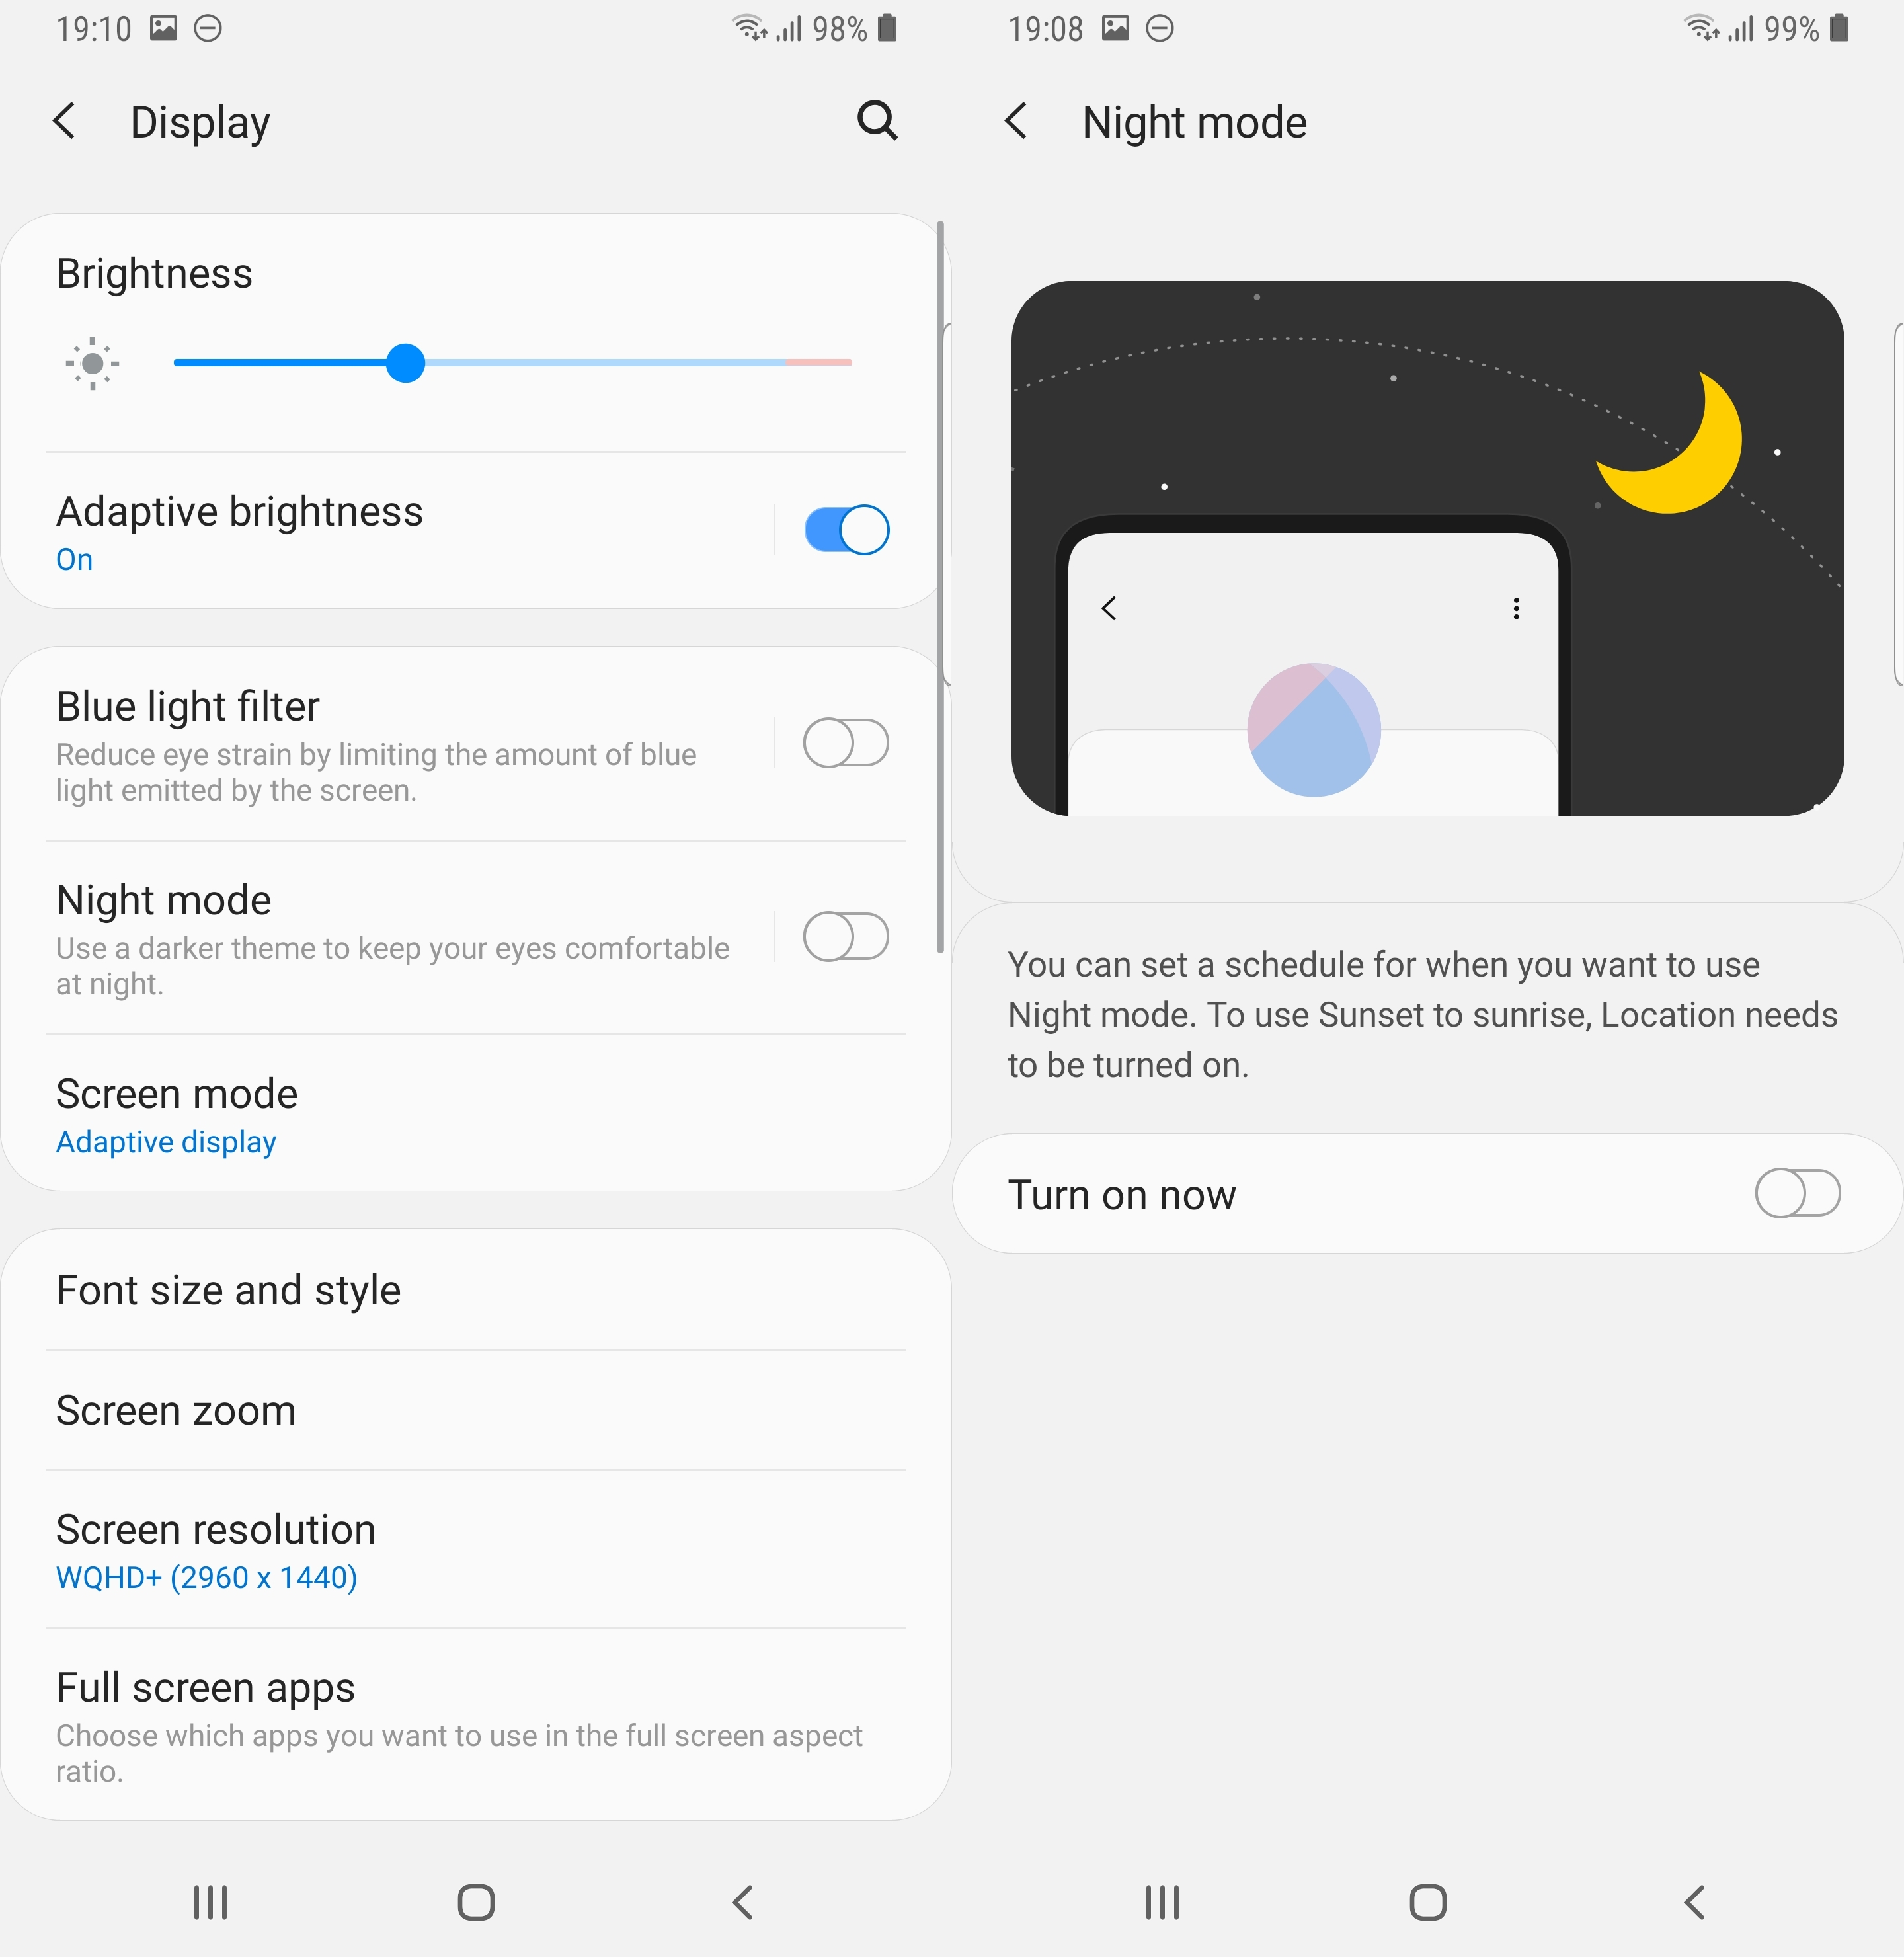 How to enable night mode on Samsung One UI (Android Pie) - SamMobile